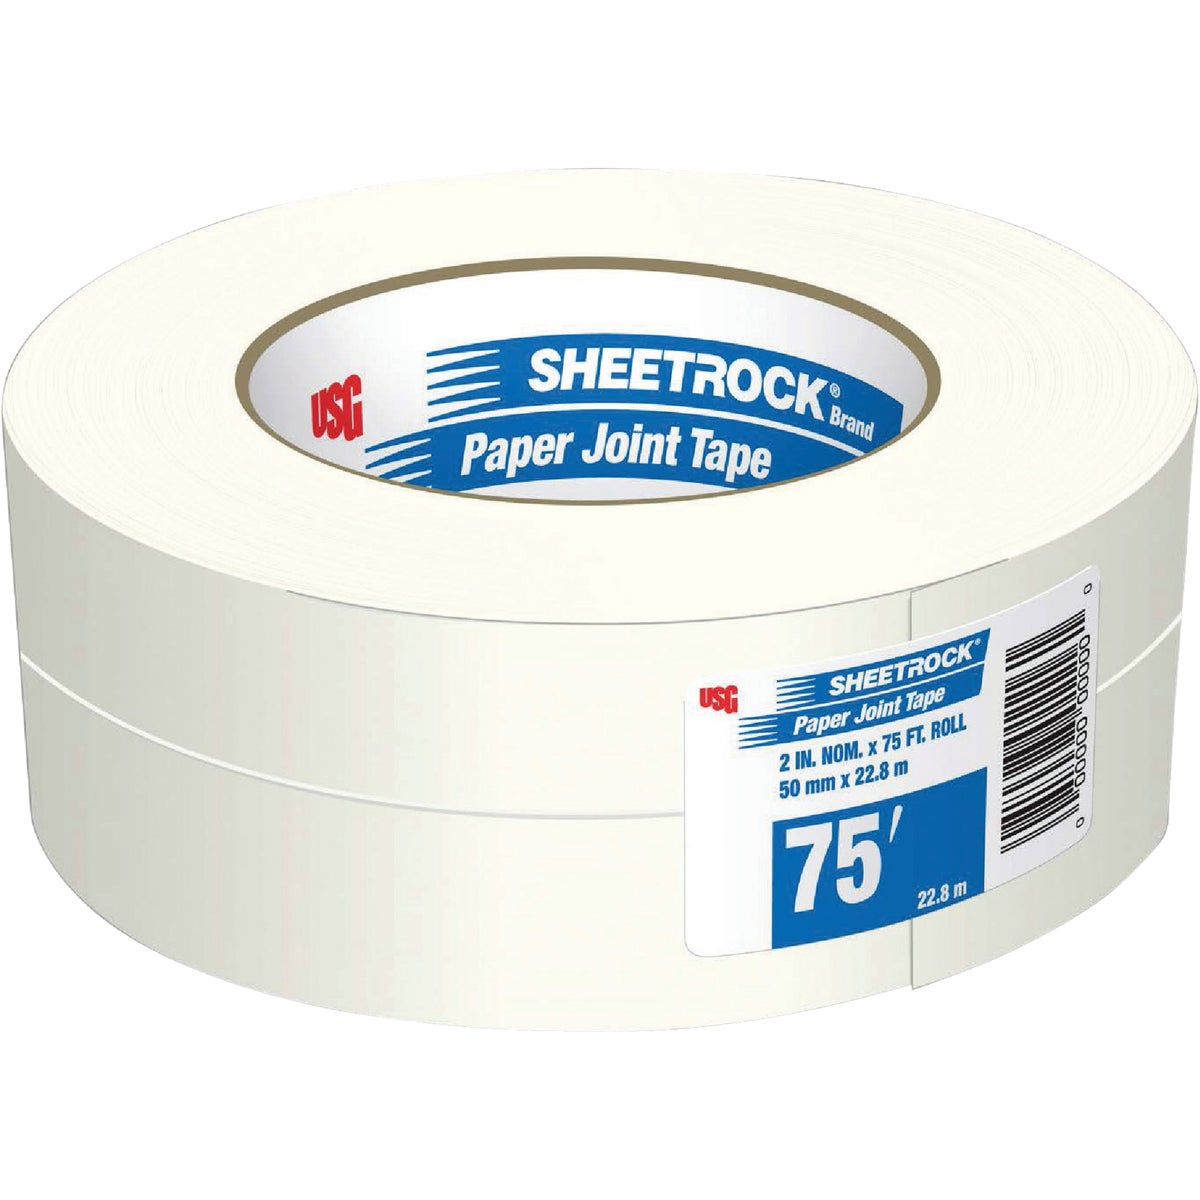 75' DRYWALL PAPER TAPE